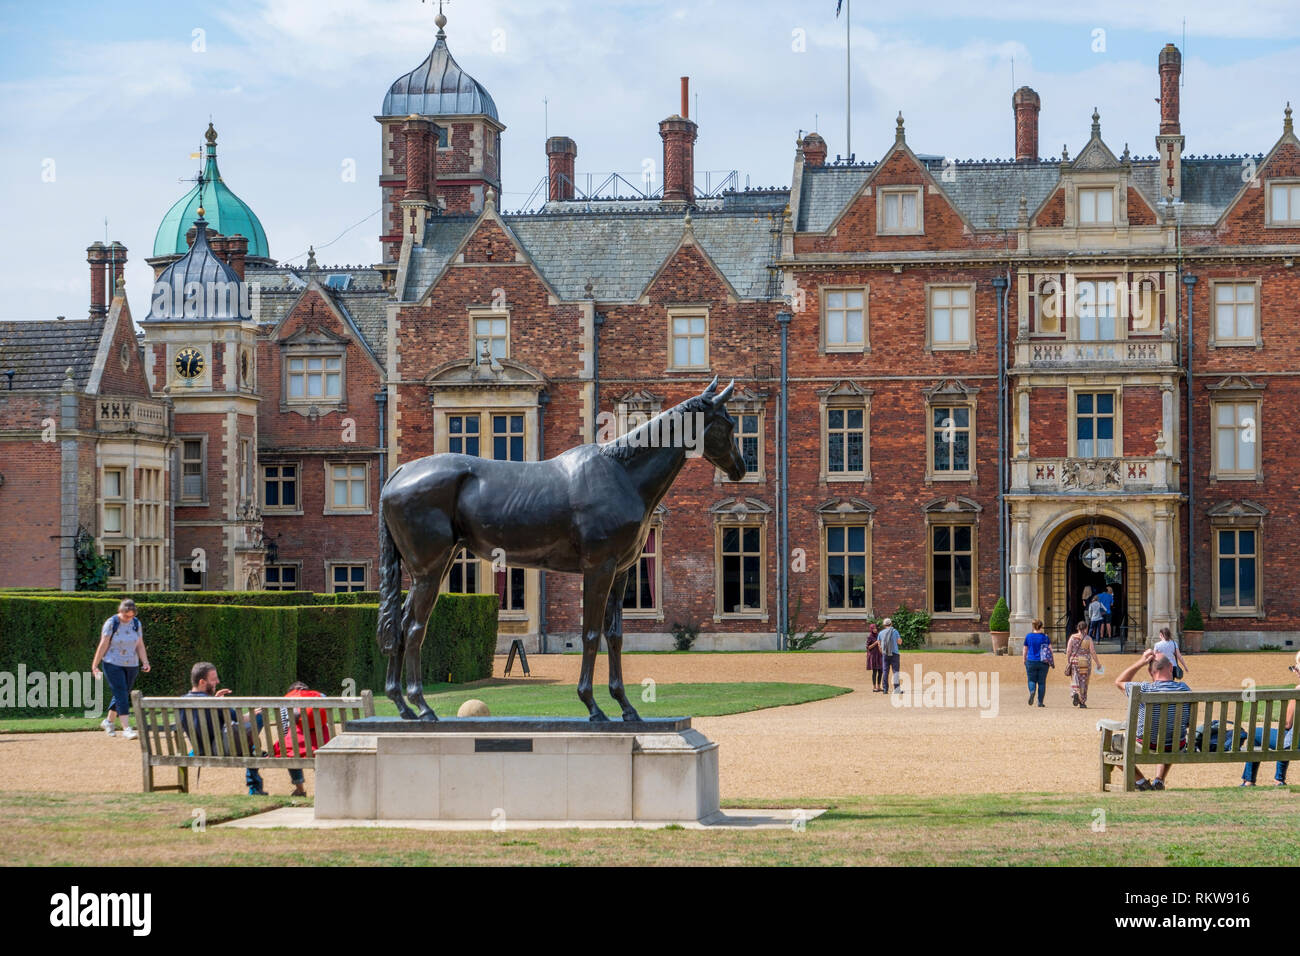 Statue of the Queens Horse Estimate outside the front entrance to Sandringham House. - Stock Image